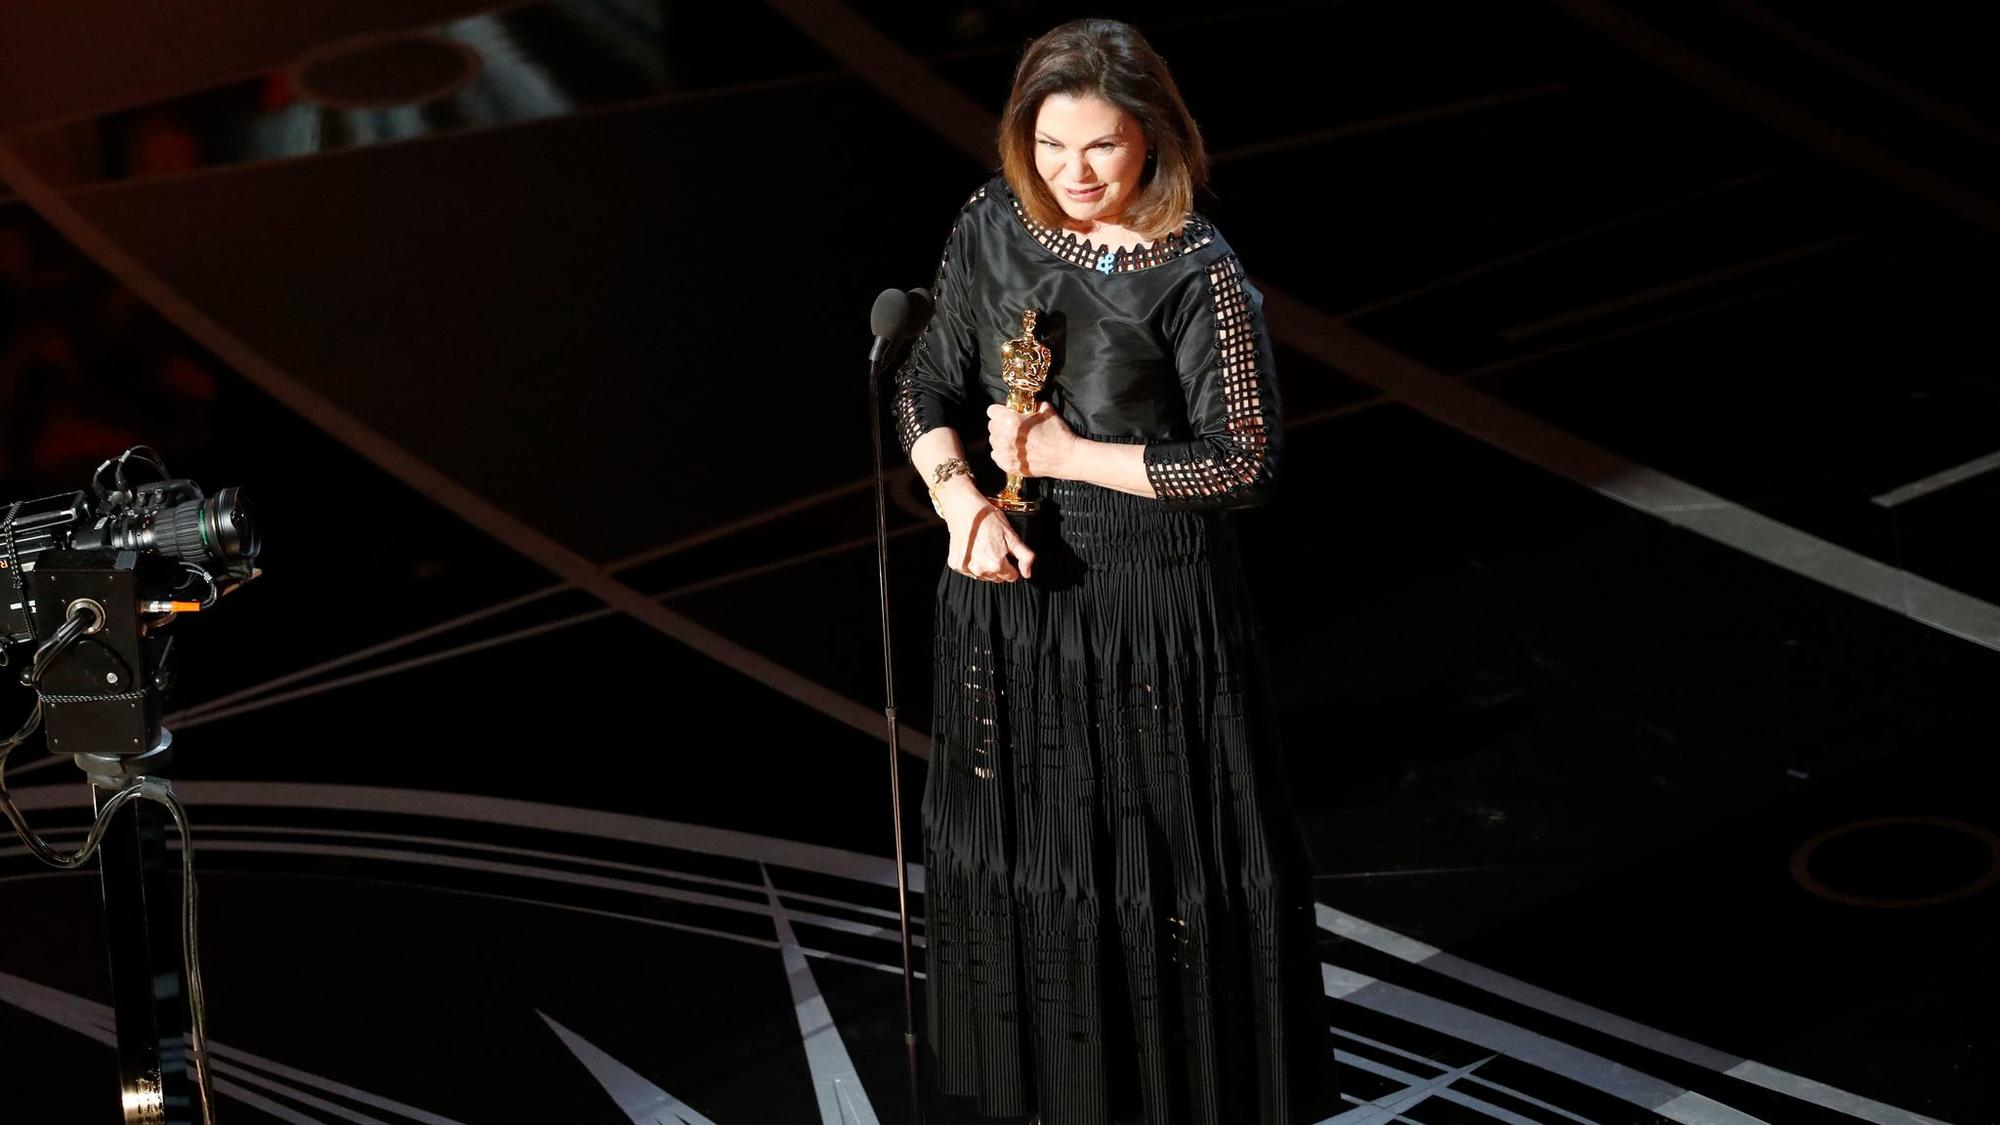 Colleen Atwood won the costume design award during the telecast of the 89th Academy Awards on Feb. 26 at the Dolby Theatre at Hollywood & Highland Center in Hollywood. None